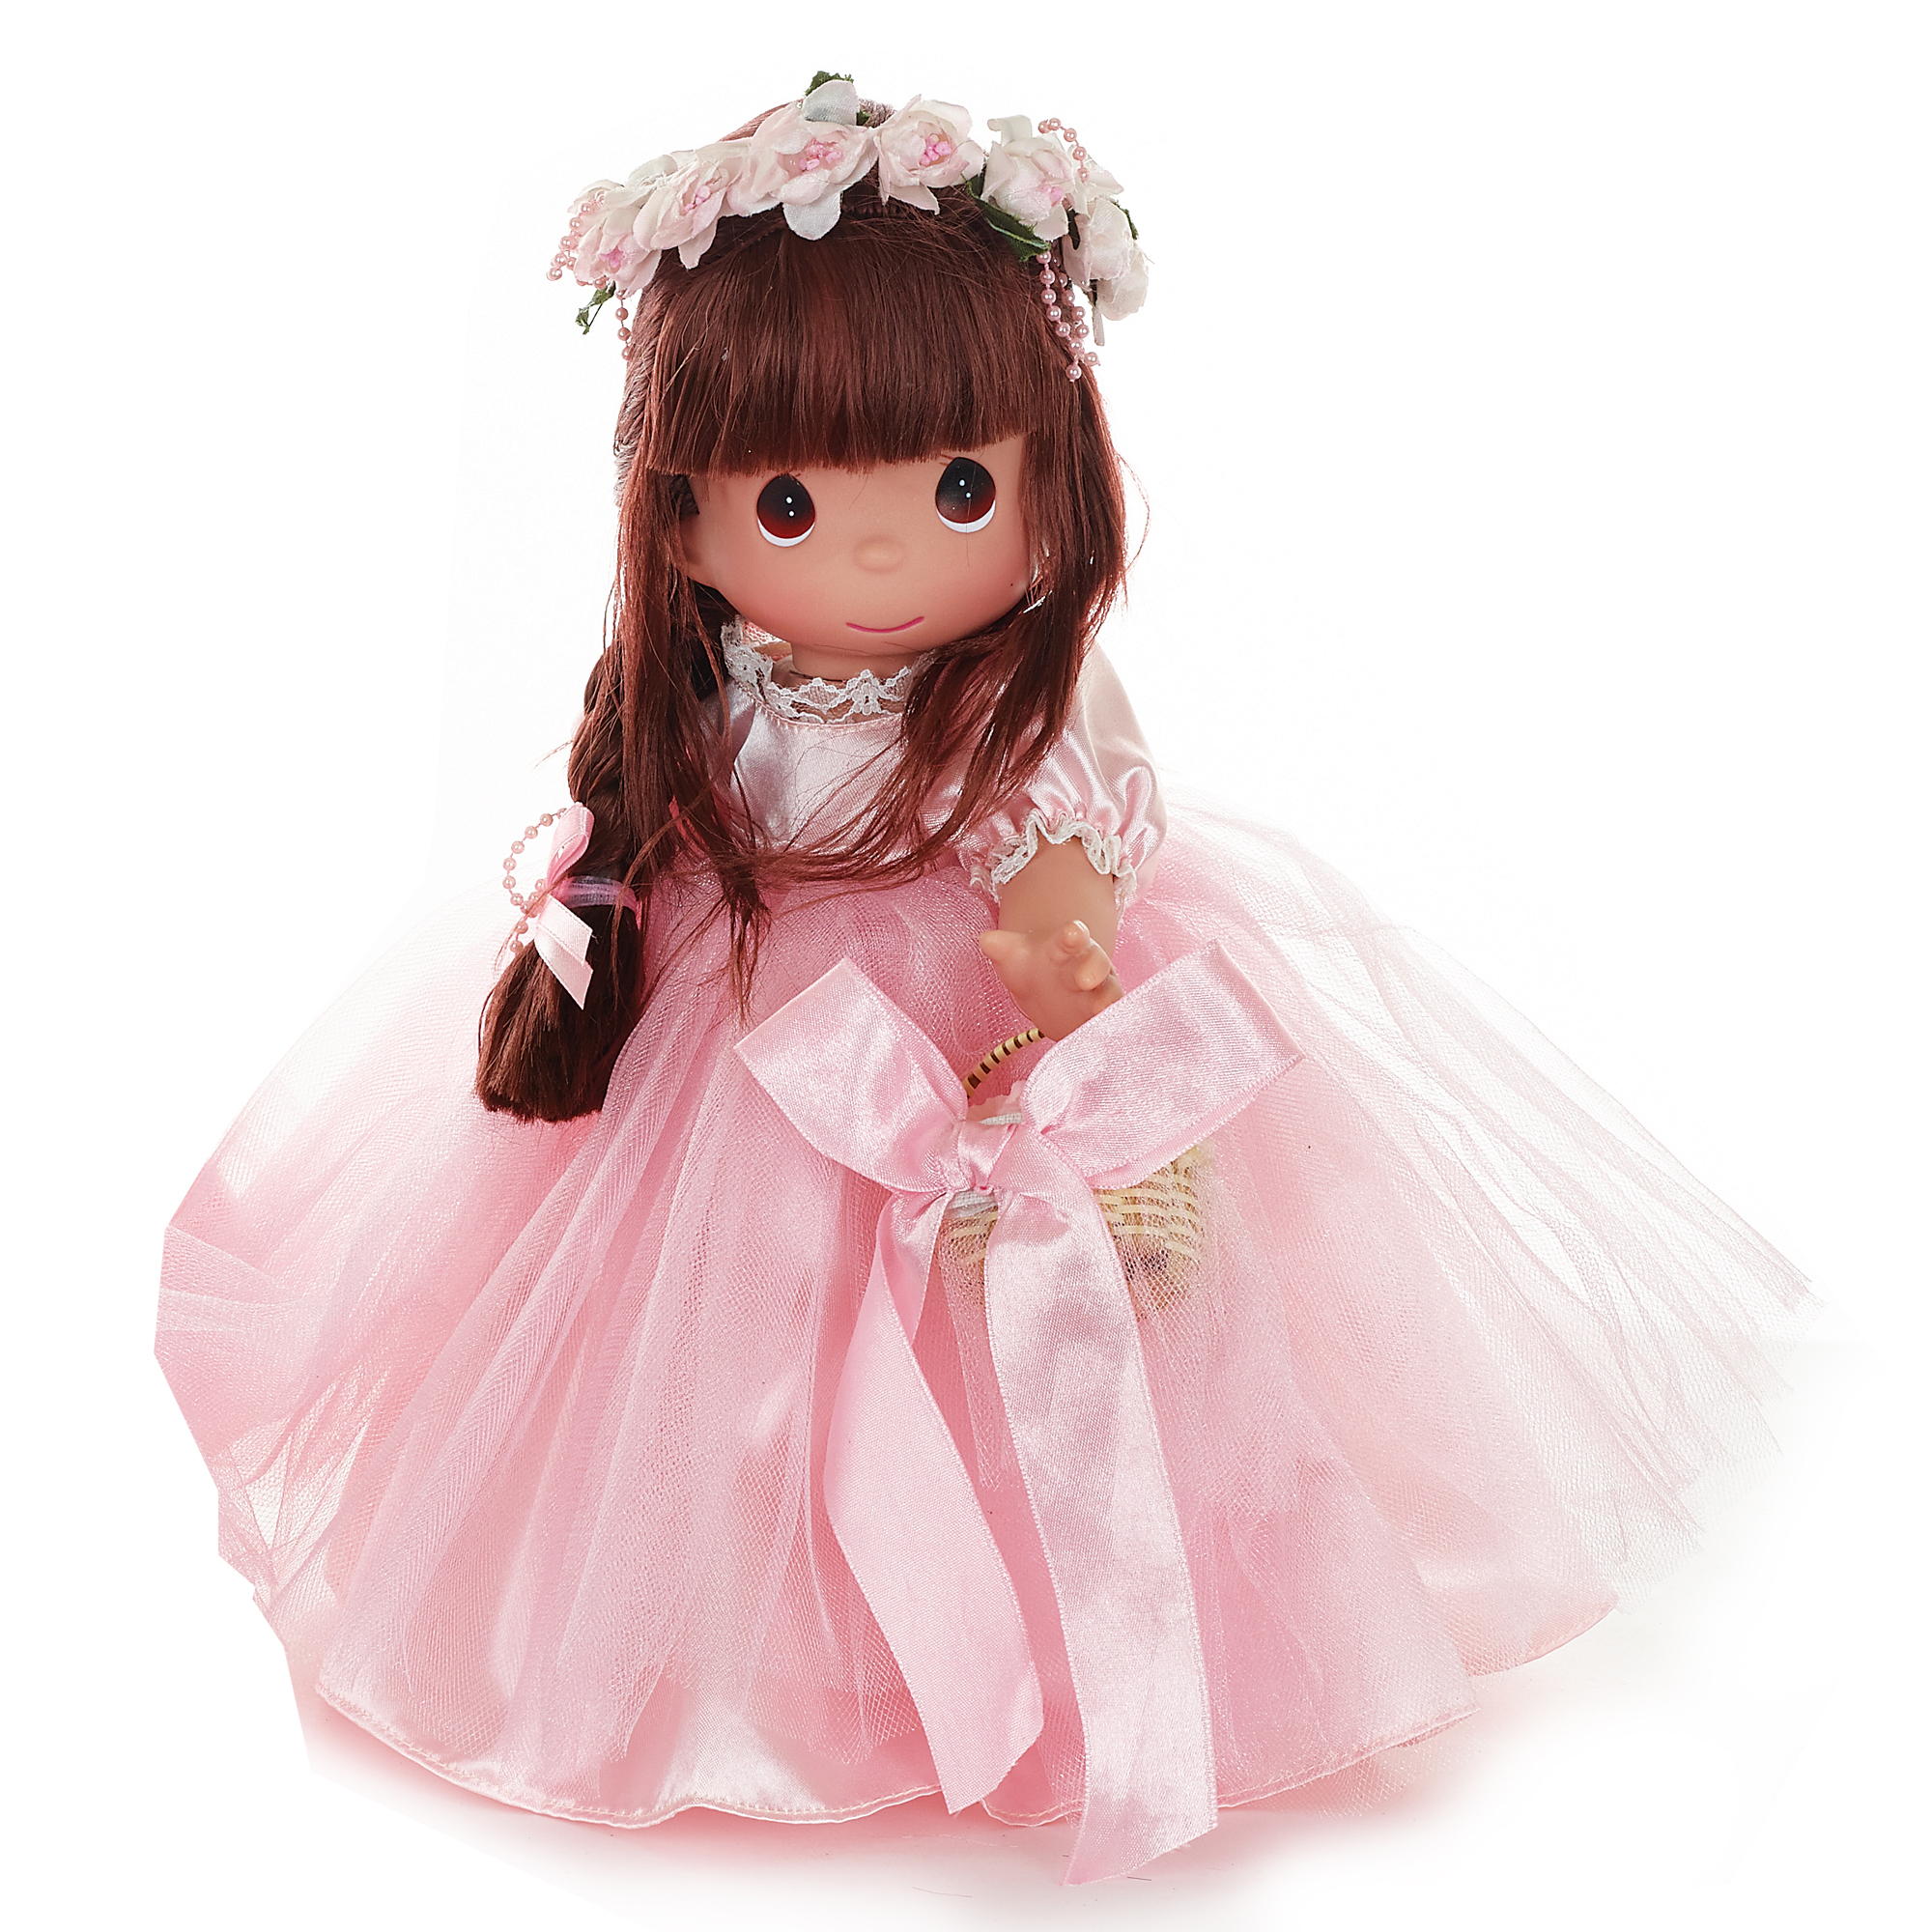 Precious Moments Dolls by The Doll Maker, Linda Rick, Precious as a Petal, Brunette, 12 inch doll